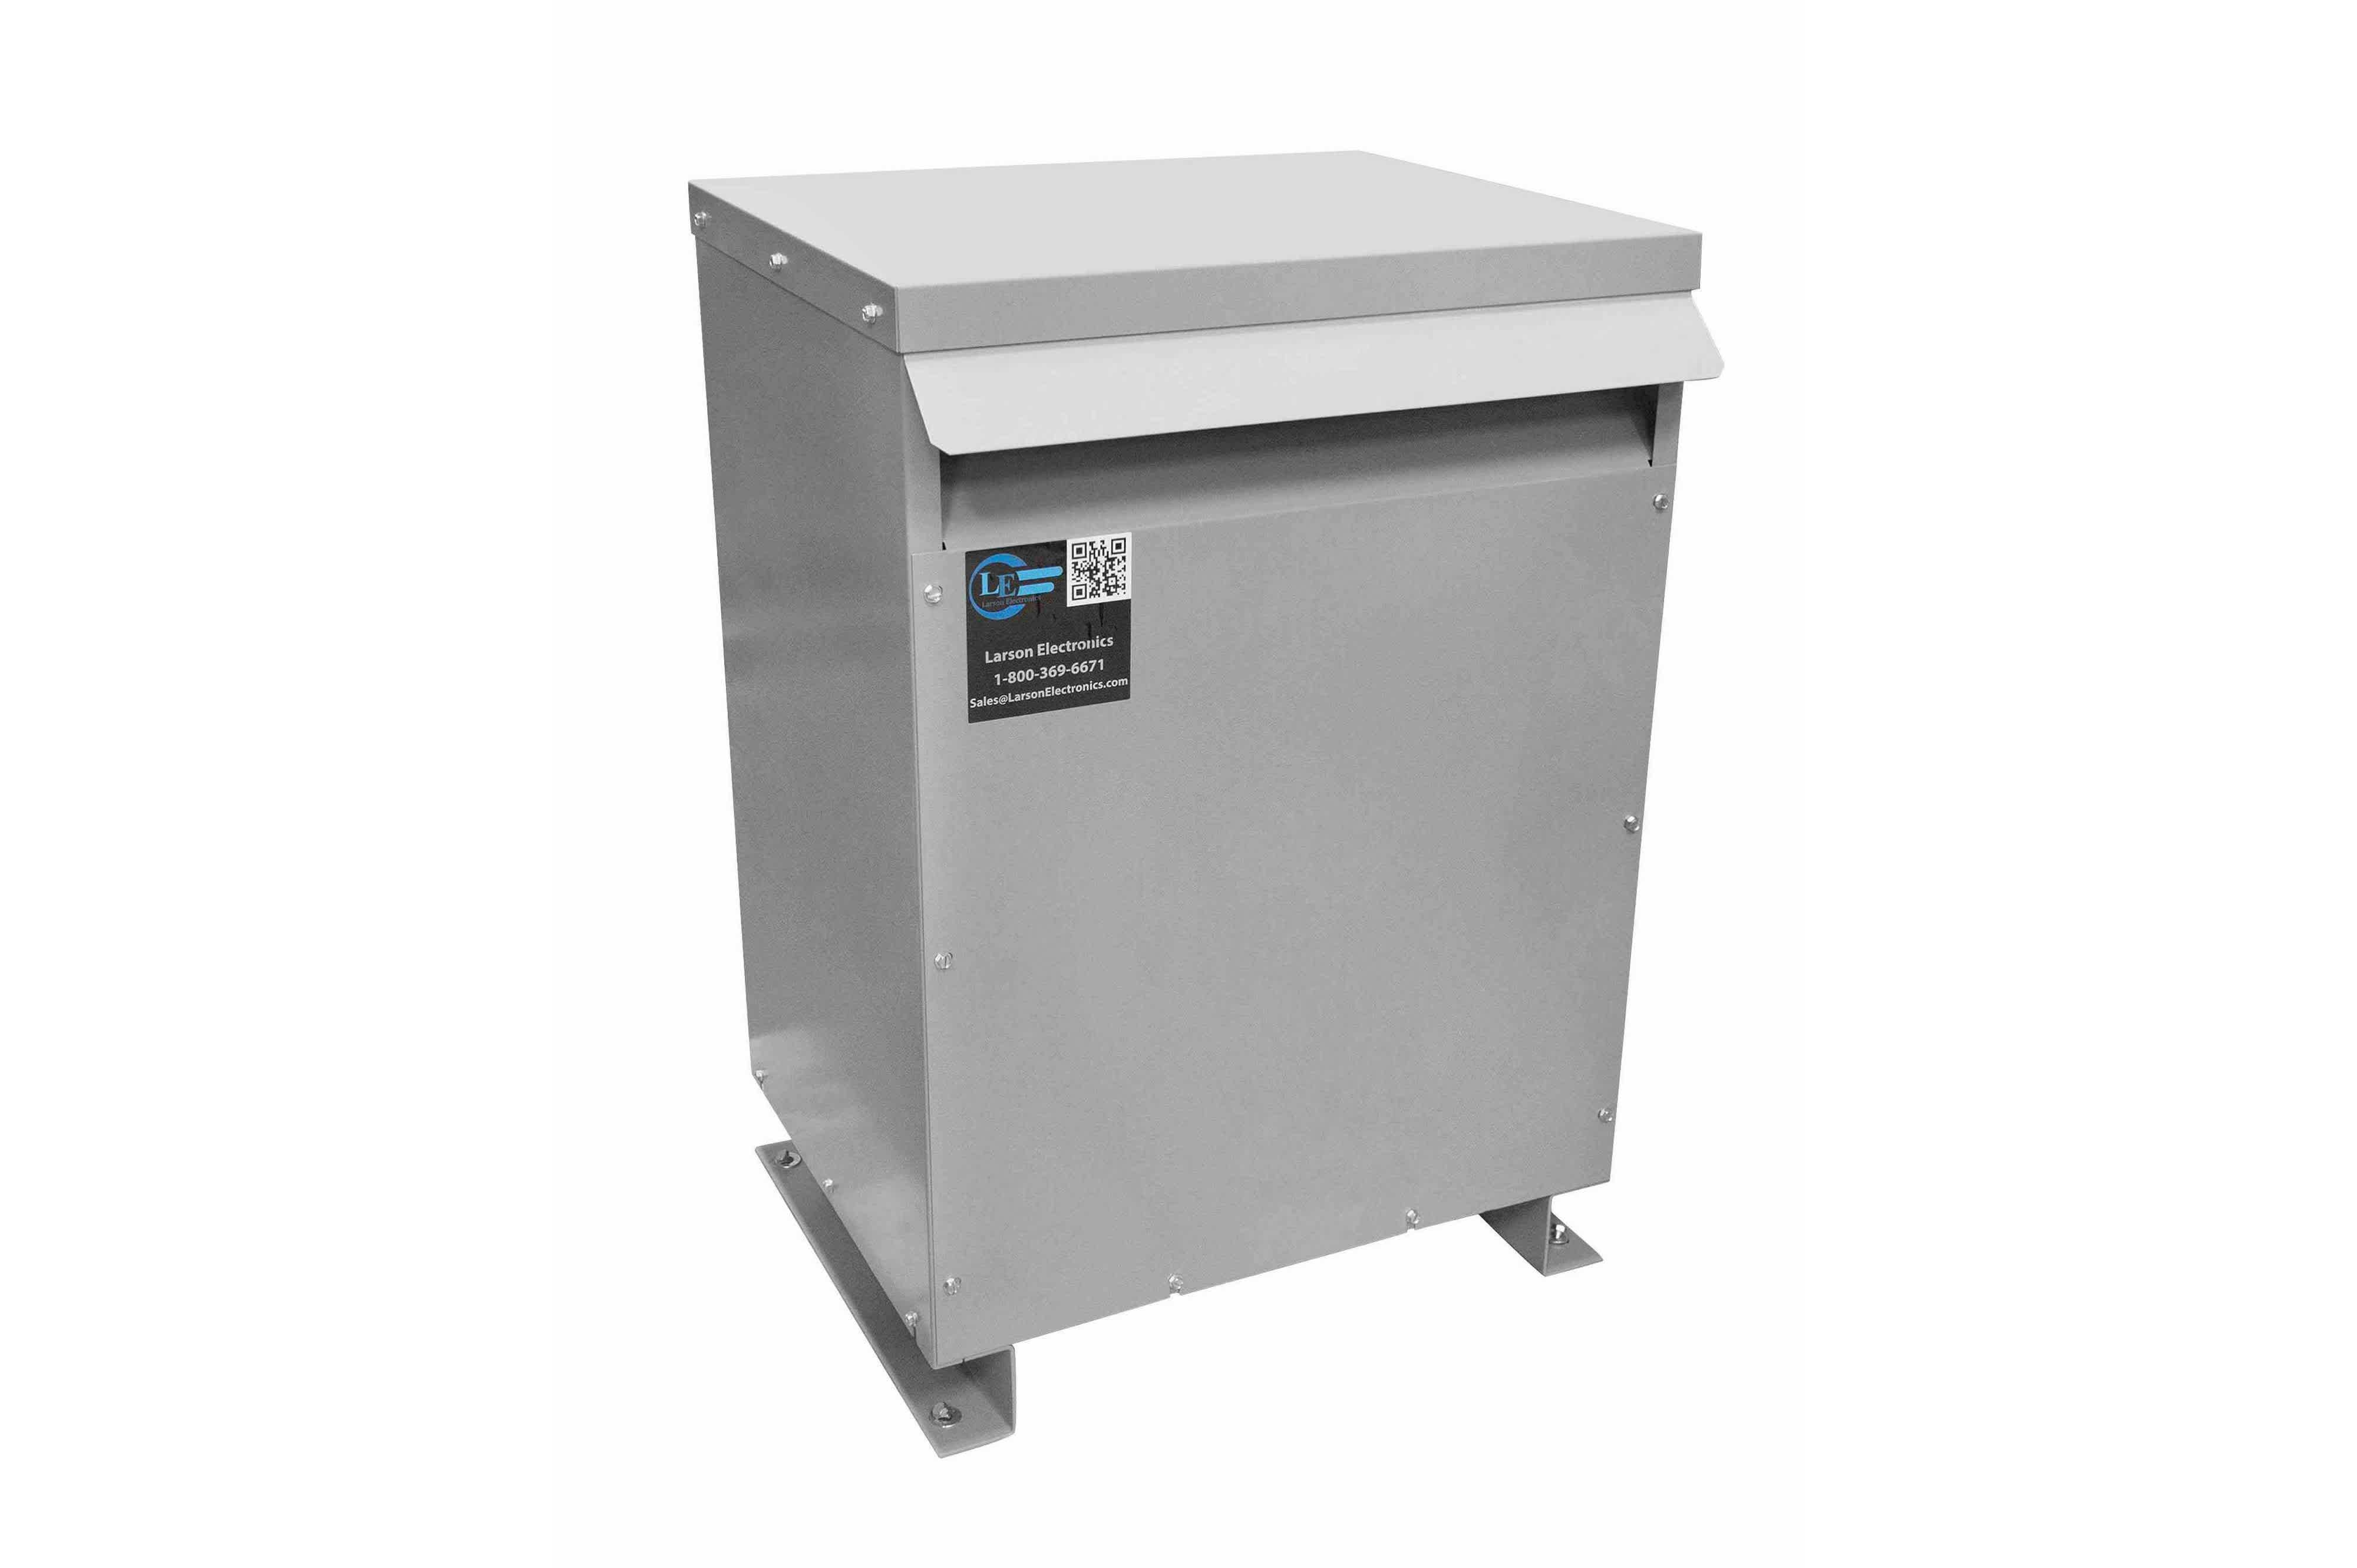 750 kVA 3PH Isolation Transformer, 240V Wye Primary, 400Y/231 Wye-N Secondary, N3R, Ventilated, 60 Hz